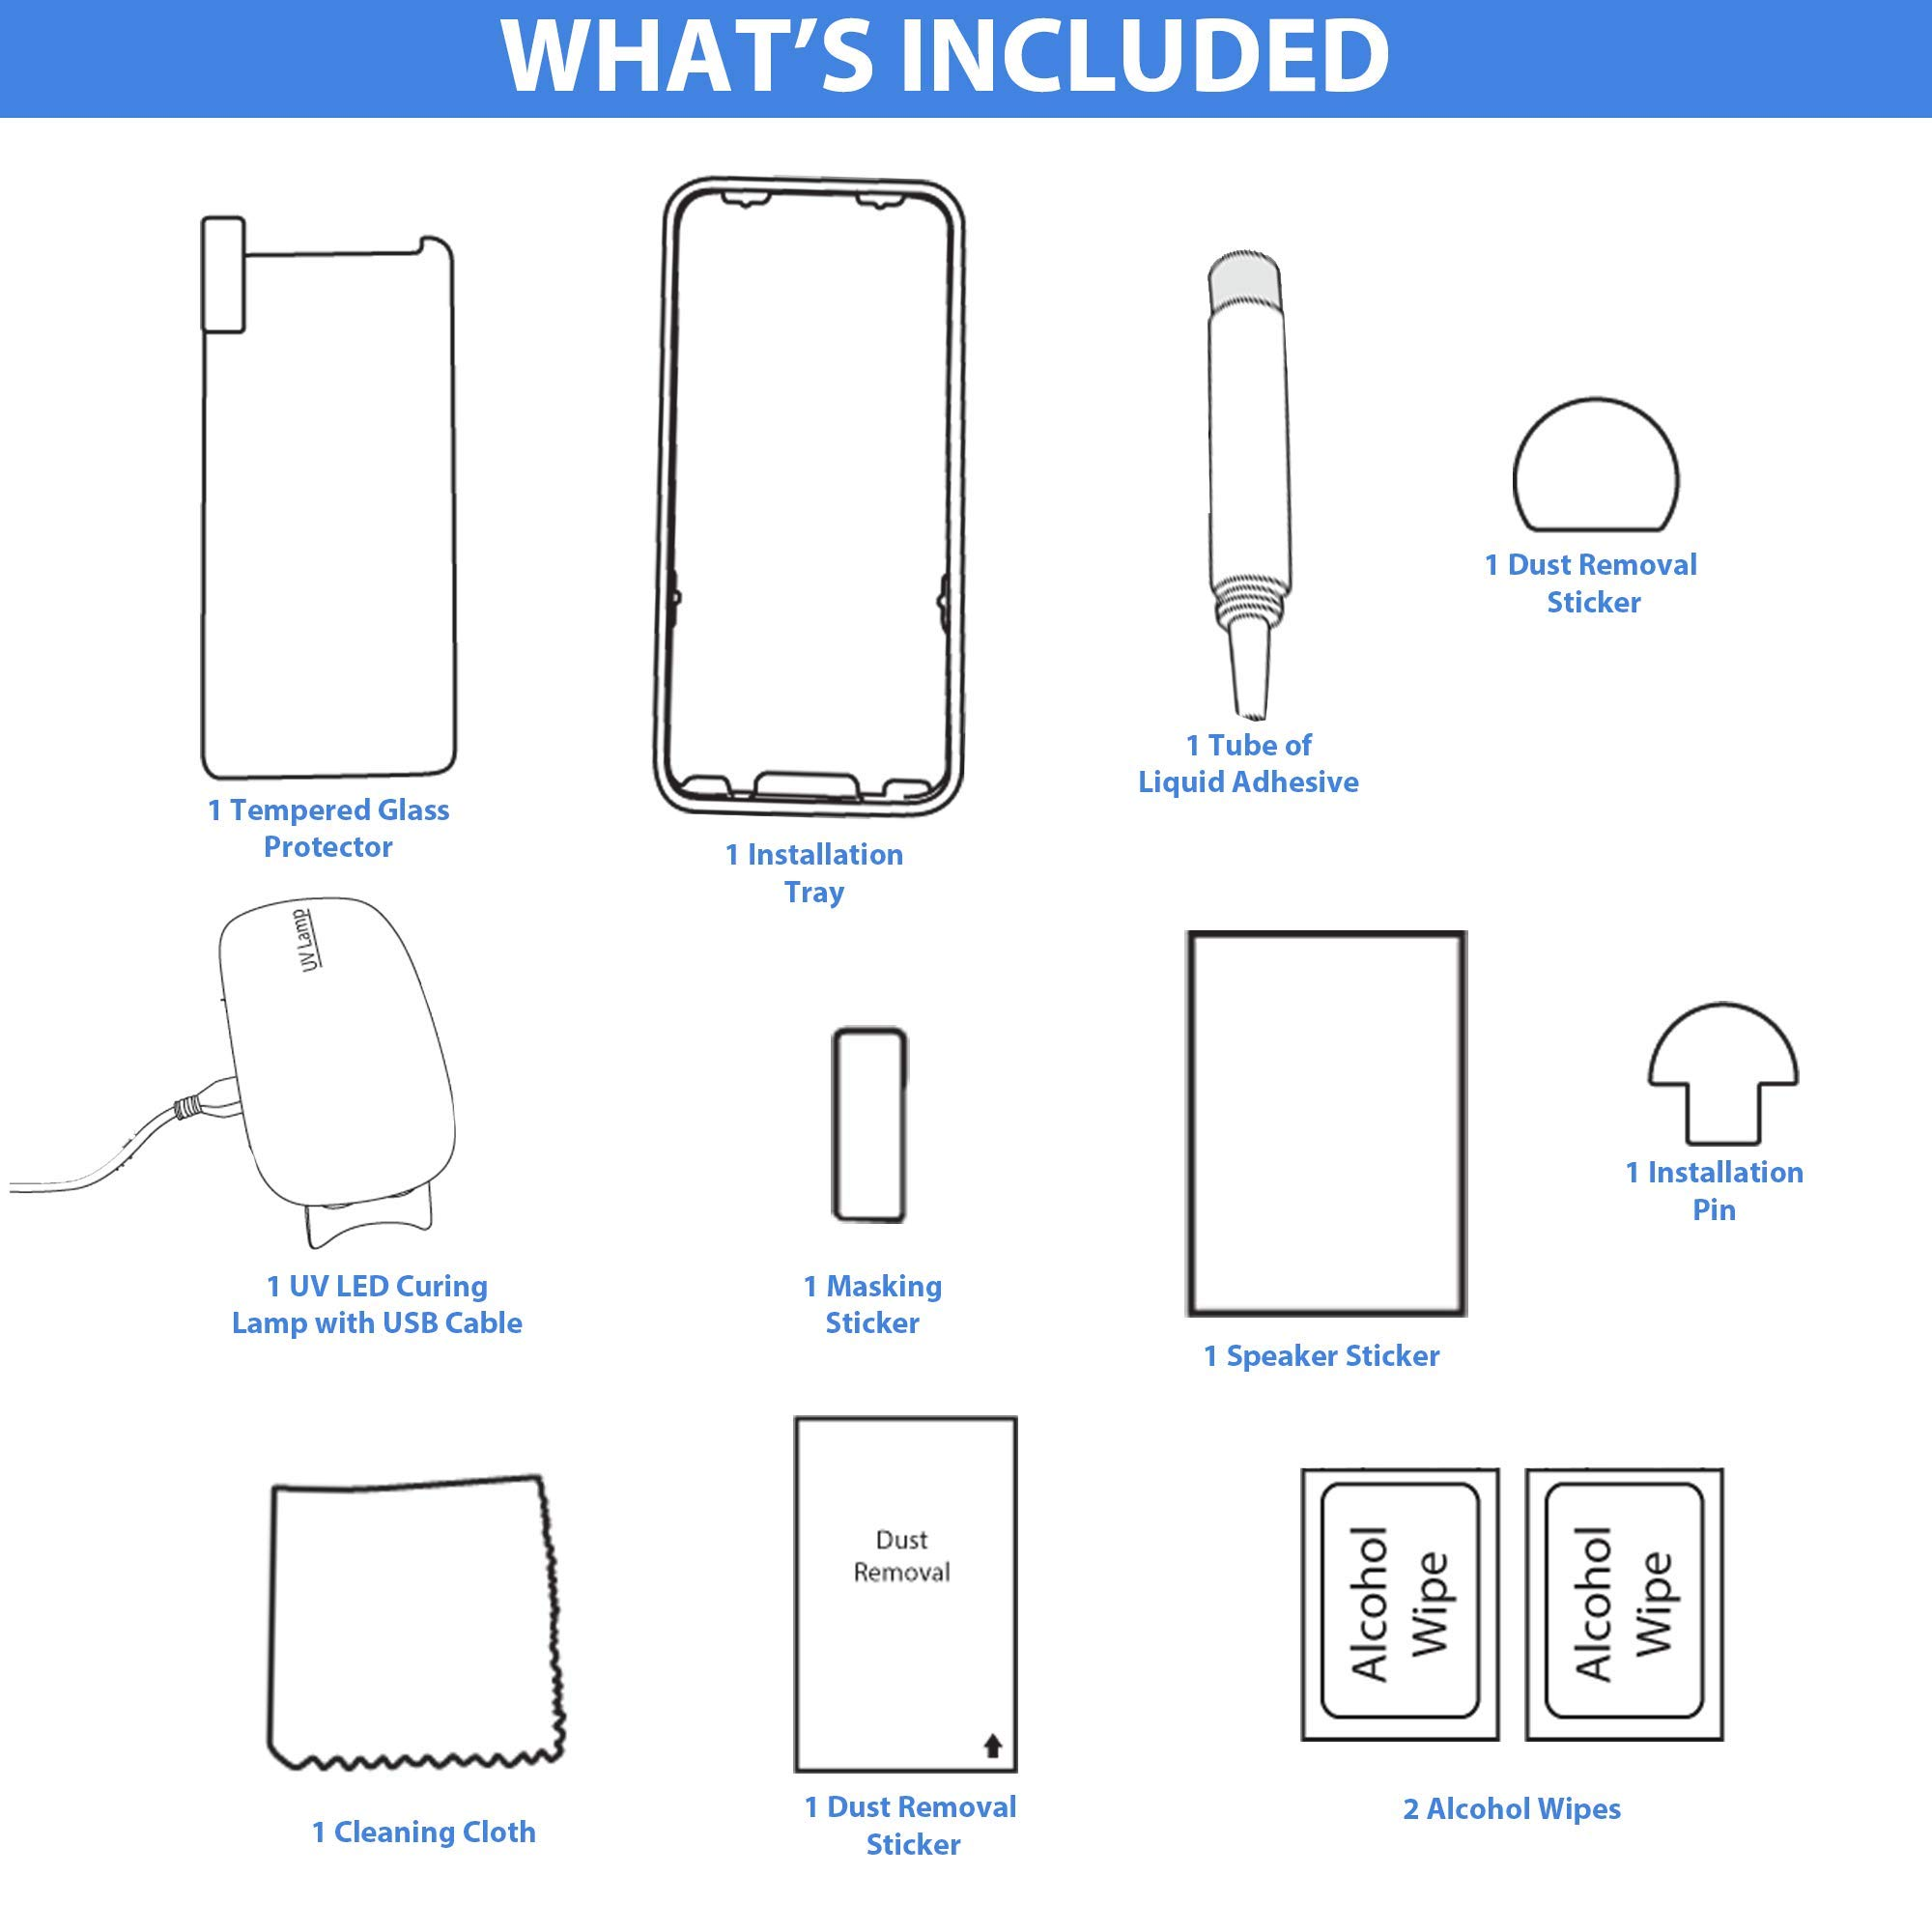 Clearview Samsung Galaxy S8 Liquid Tempered Glass Screen Protector - 9H Ultra Clear HD Japanese Glass, Full Screen Edge Coverage, Easy Install, Loca UV Light, Case Friendly (Full Kit) by Clearview (Image #6)